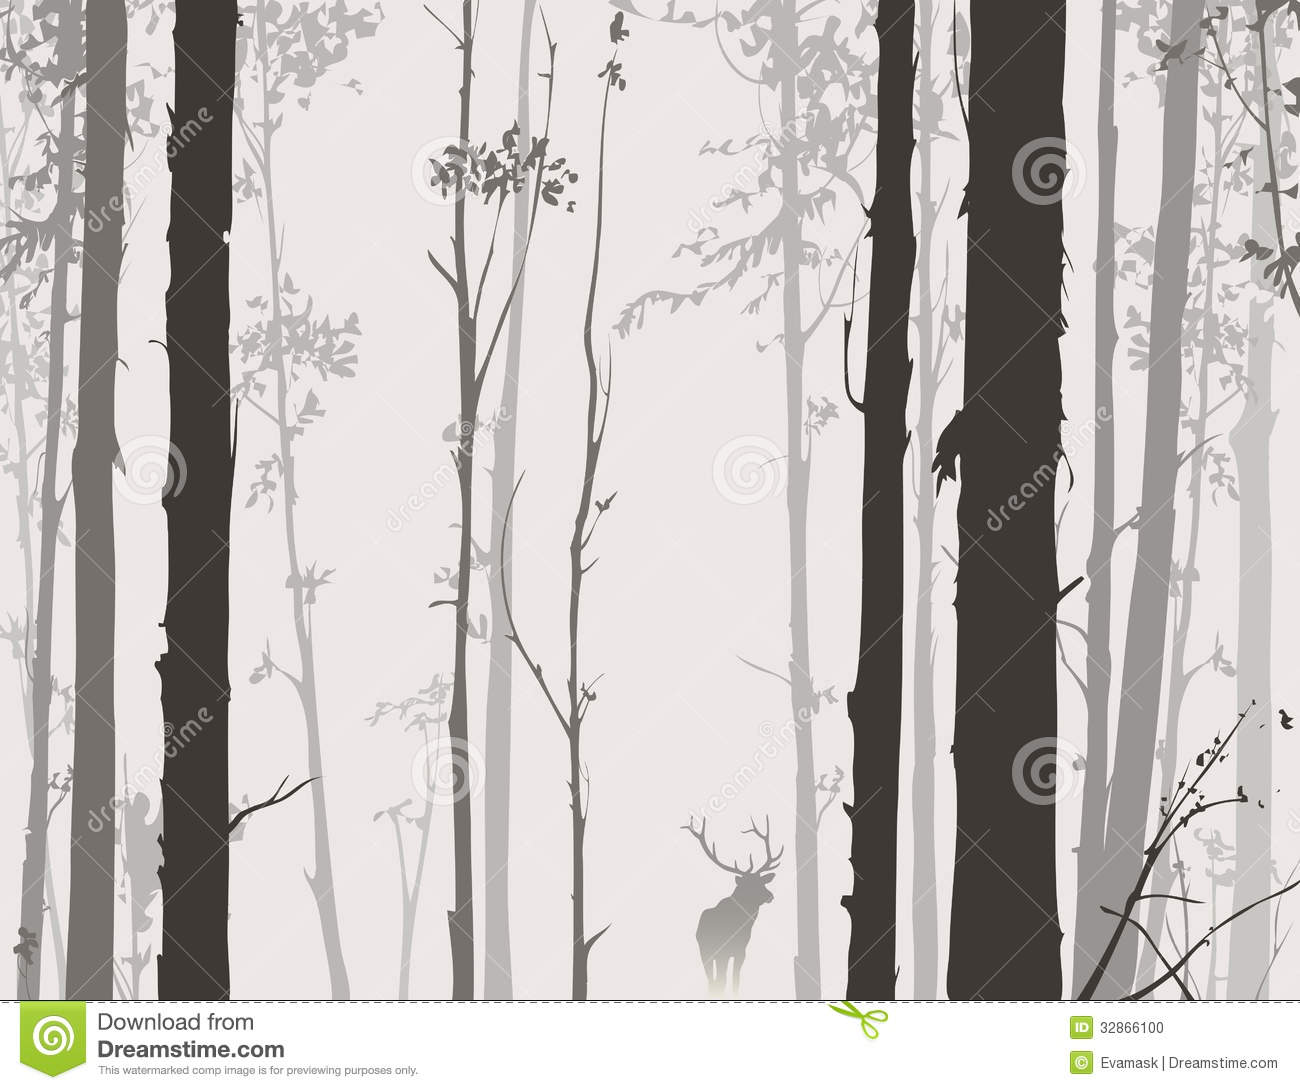 Tree And Owl Wall Stickers Silhouette Of The Forest With Deer Stock Photo Image